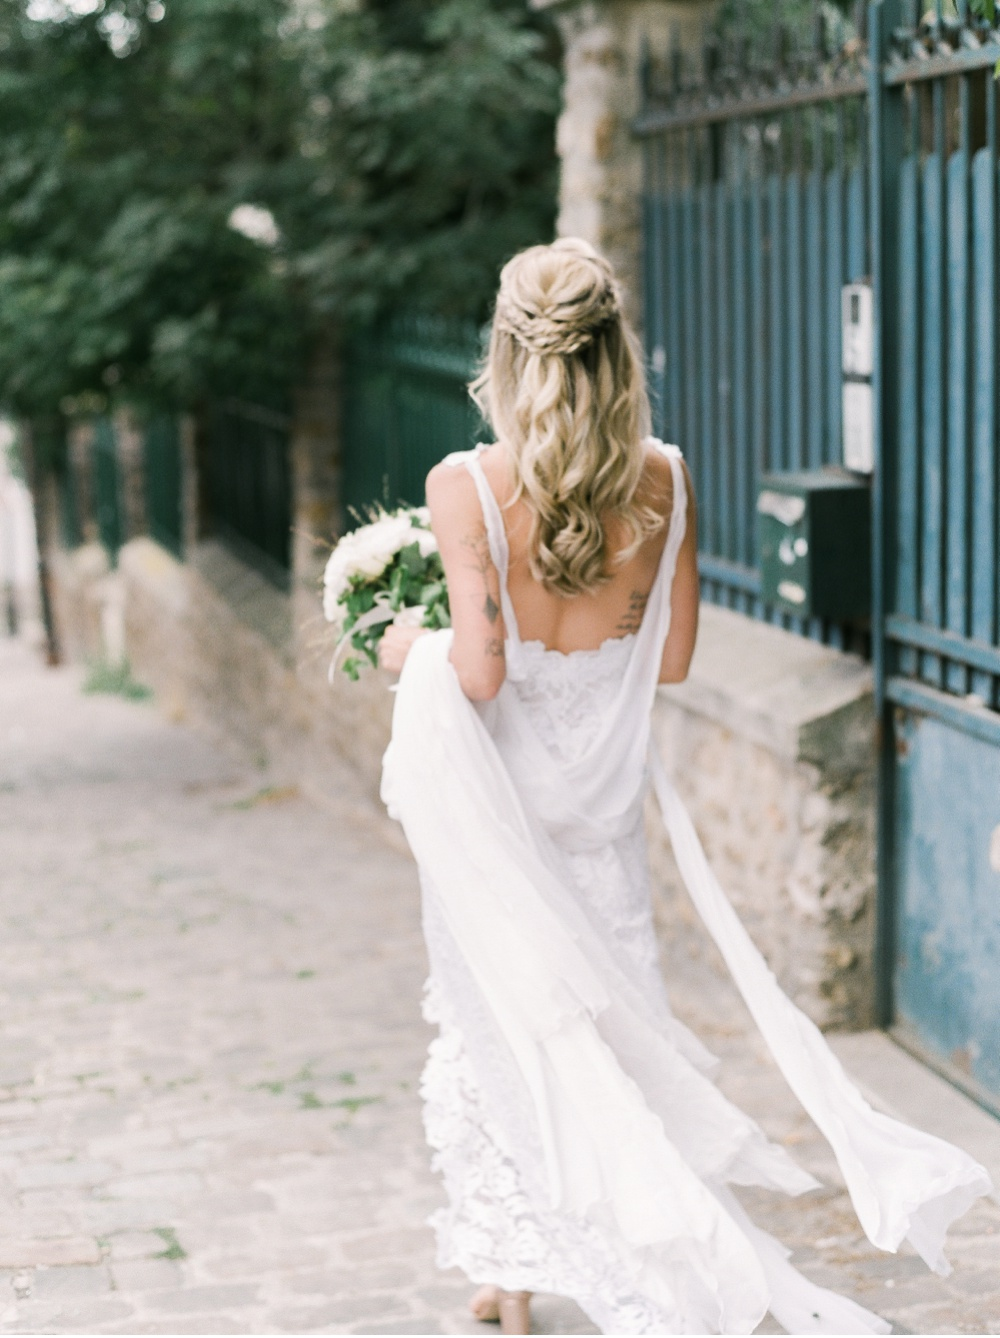 Paris_Elopement_wedding_Photographer©MadalinaSheldon_0071.jpg